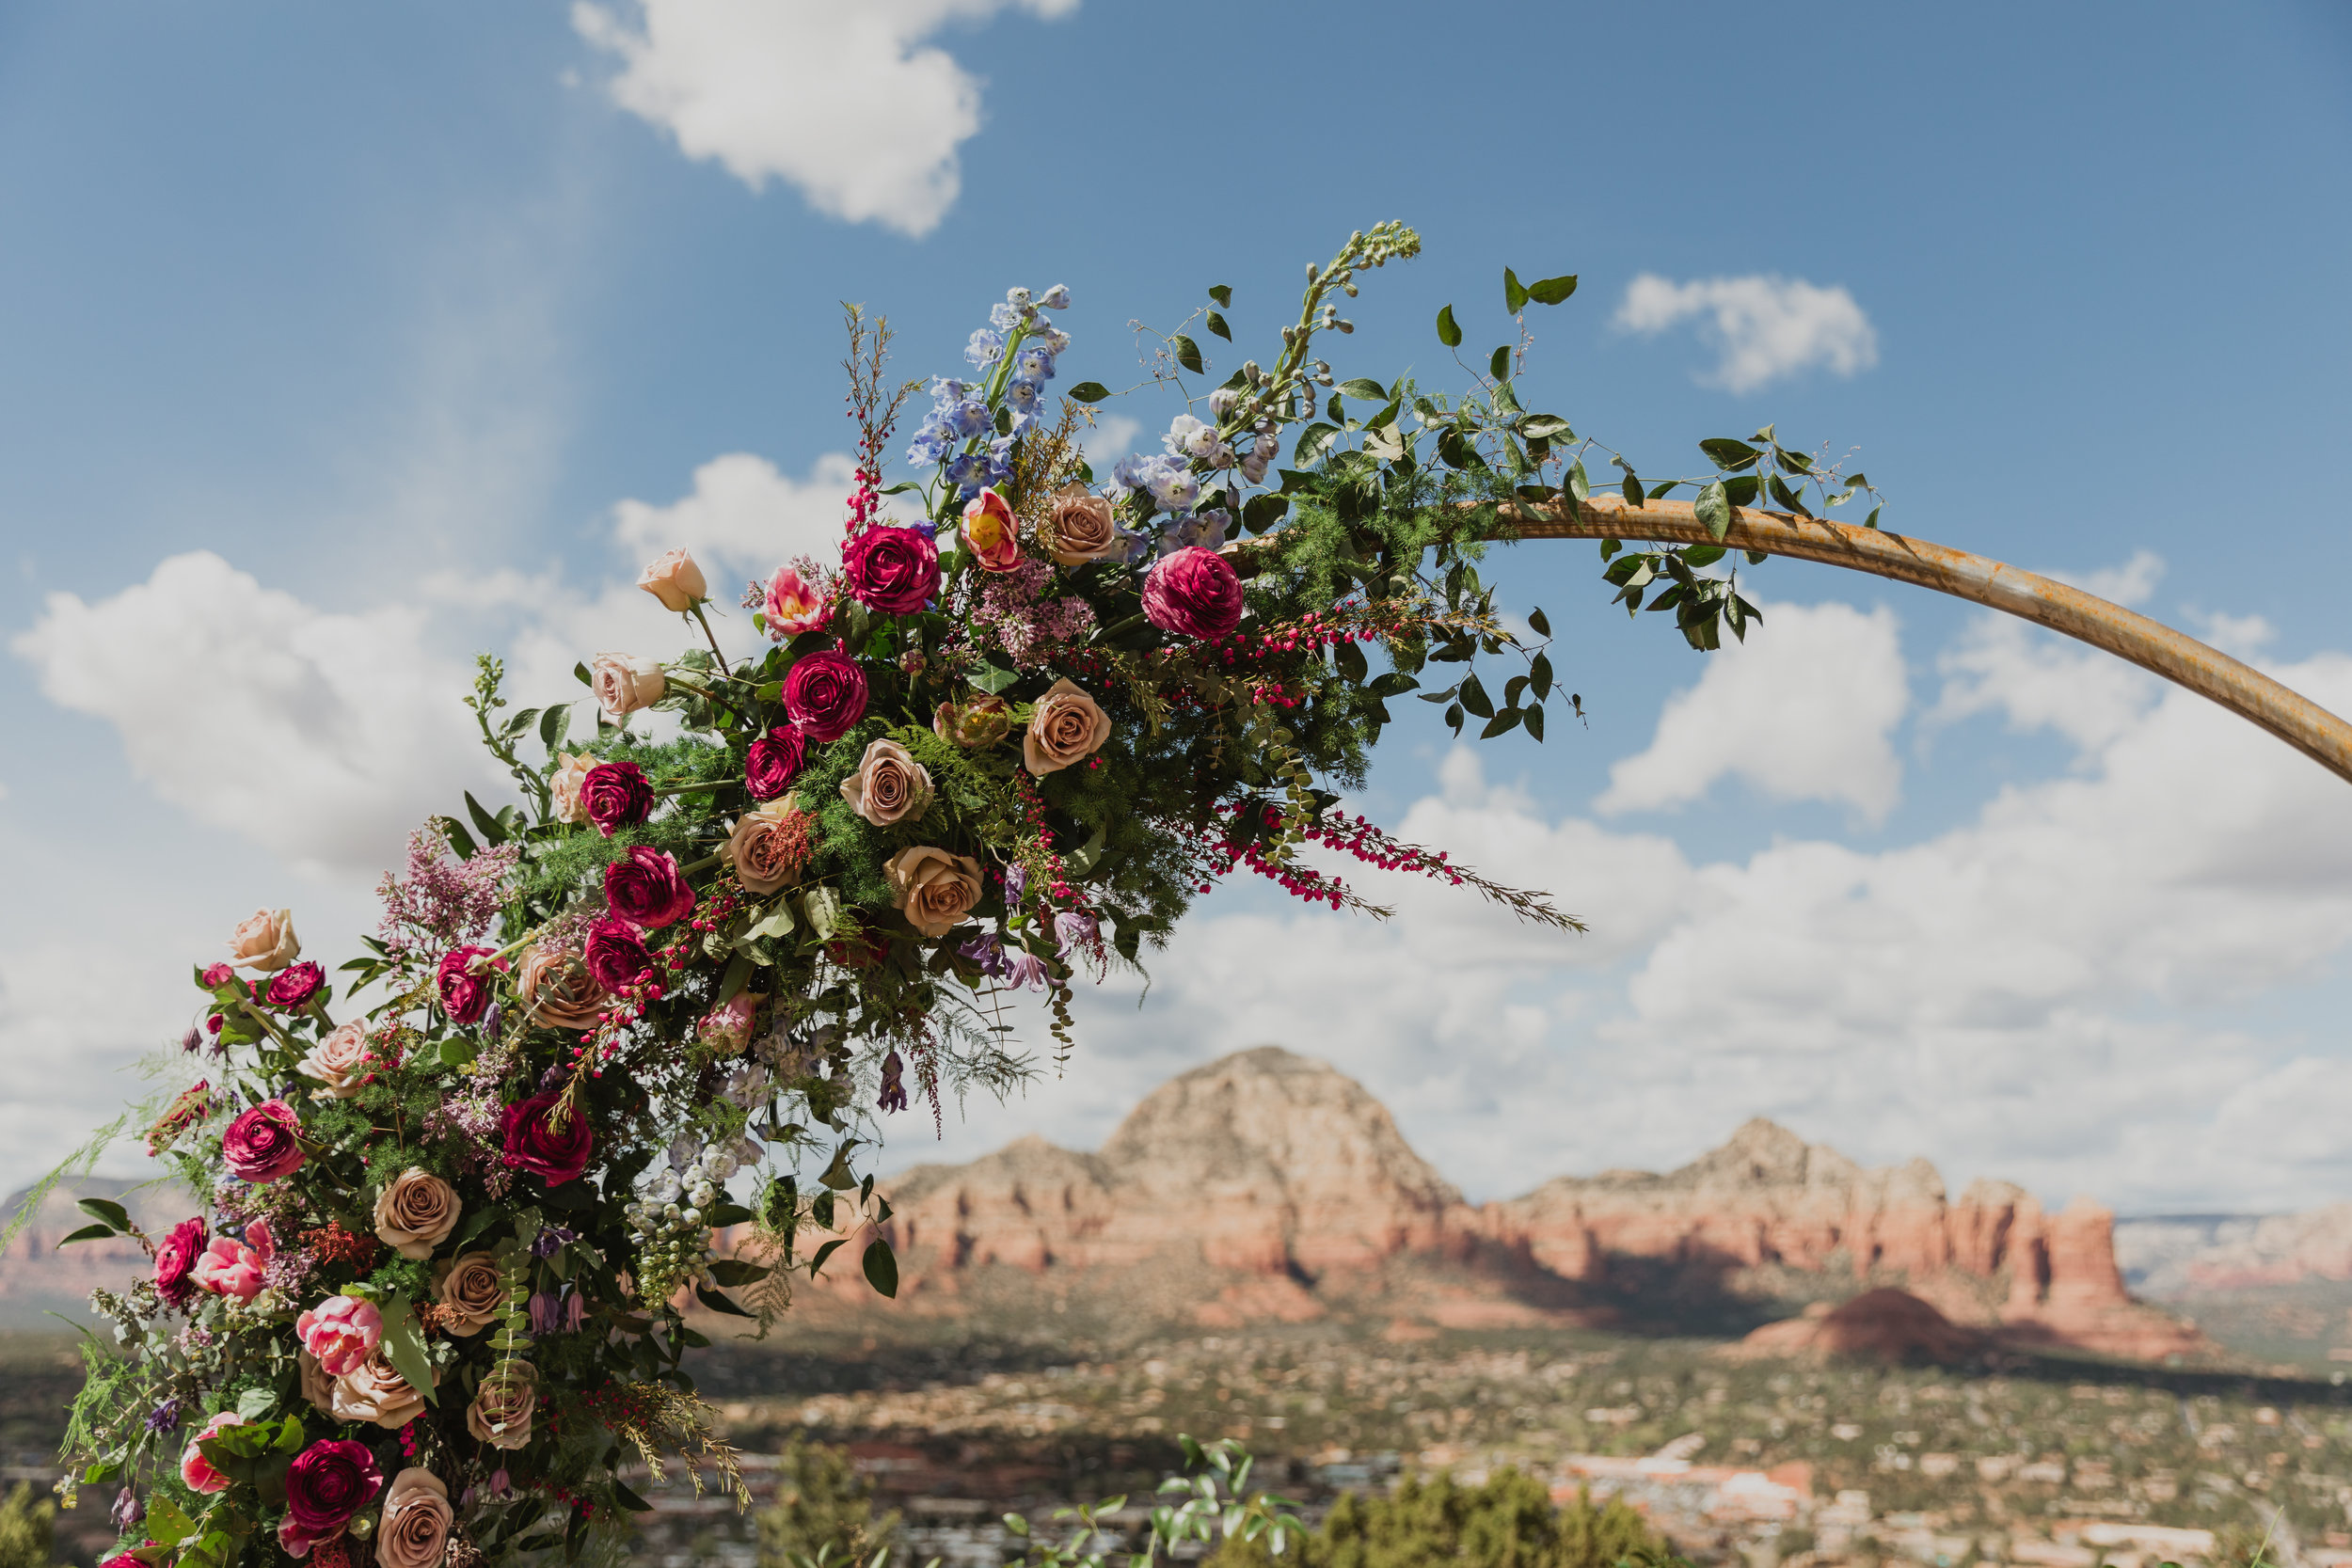 Stars and Moon Inspired Wedding in the Red Rocks of Sedona - Arizona Florist serving Phoenix scottsdale Mesa chandler Flagstaff Prescott - Purple, Blue, and Greenery Circle Arch Inspiration